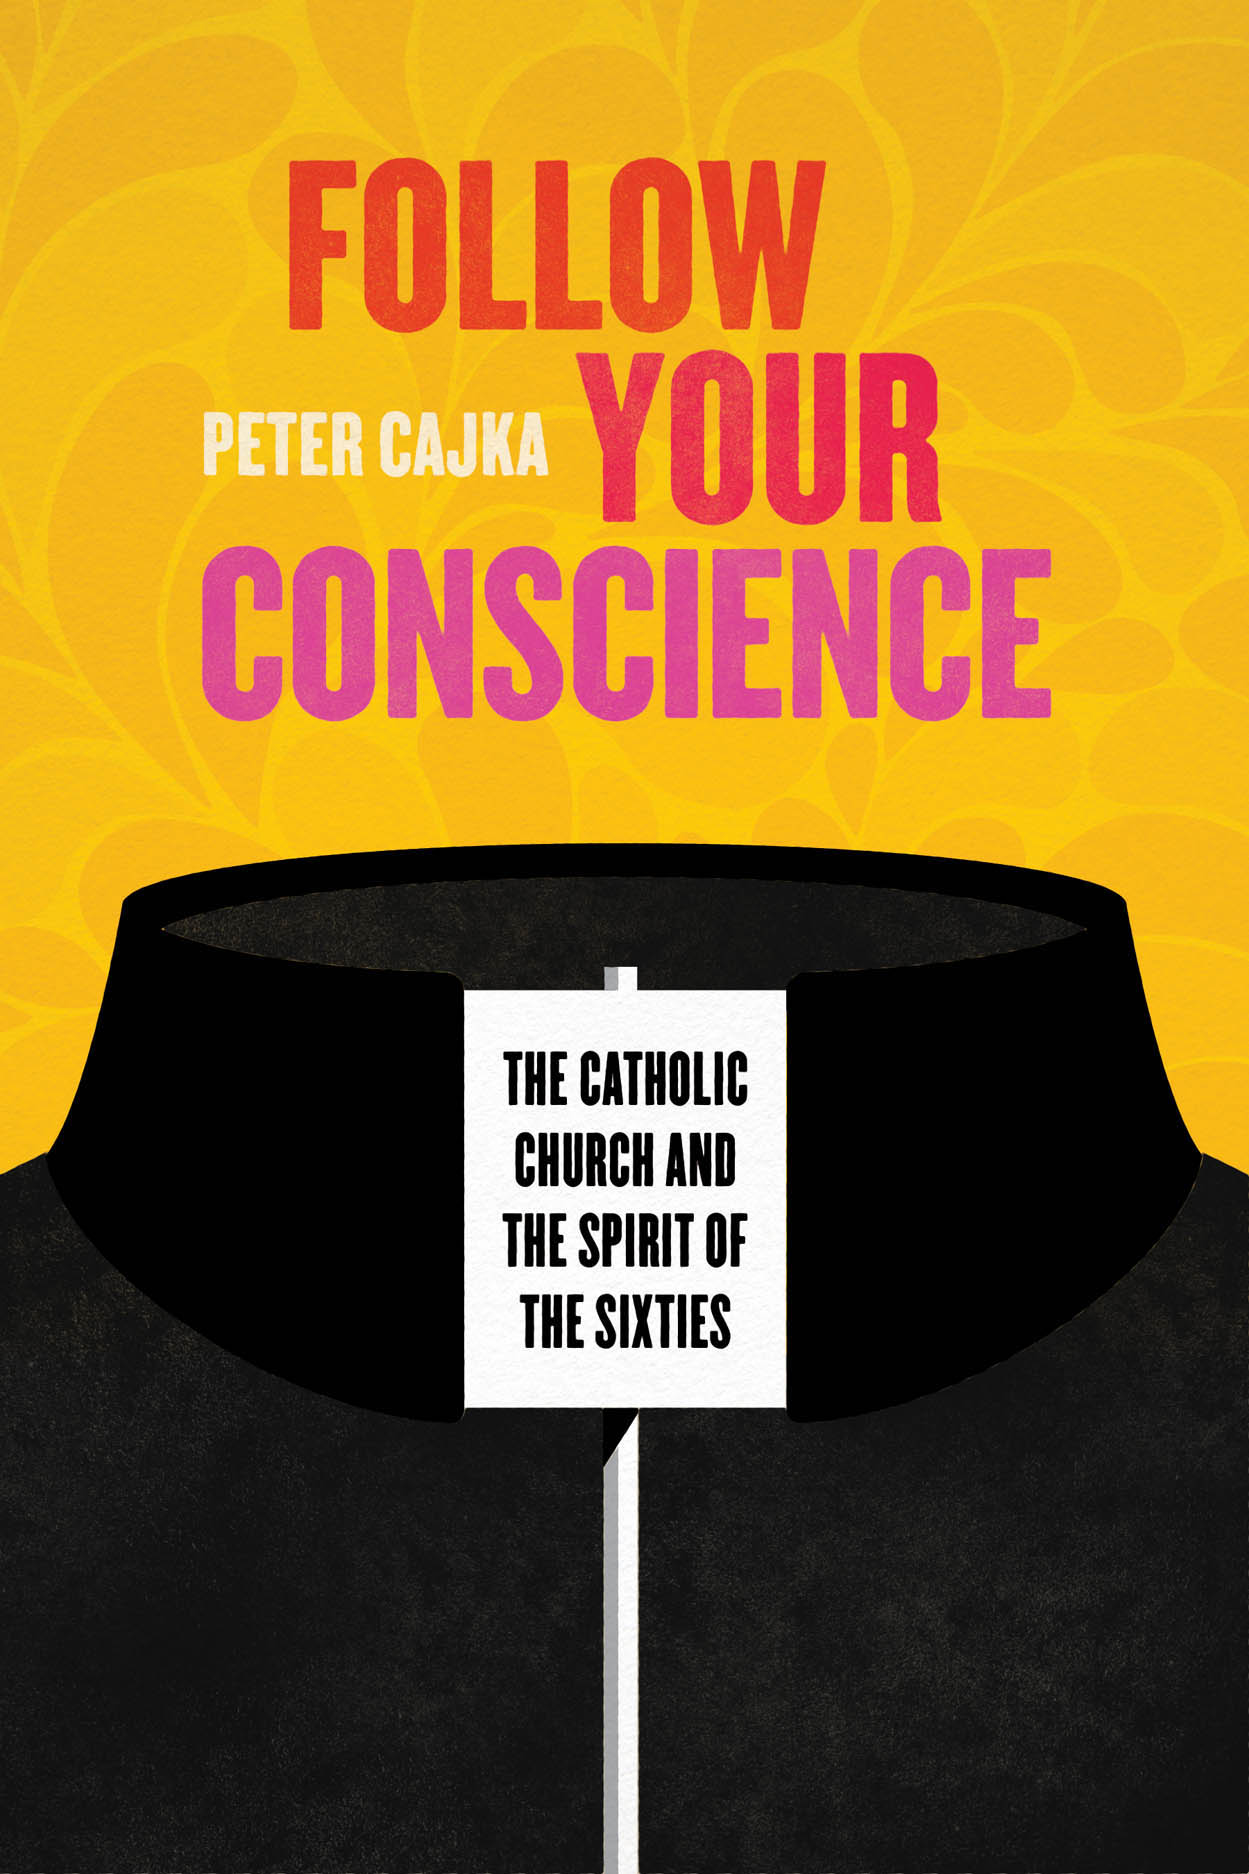 Follow Your Conscience: The Catholic Church and the Spirit of the Sixties